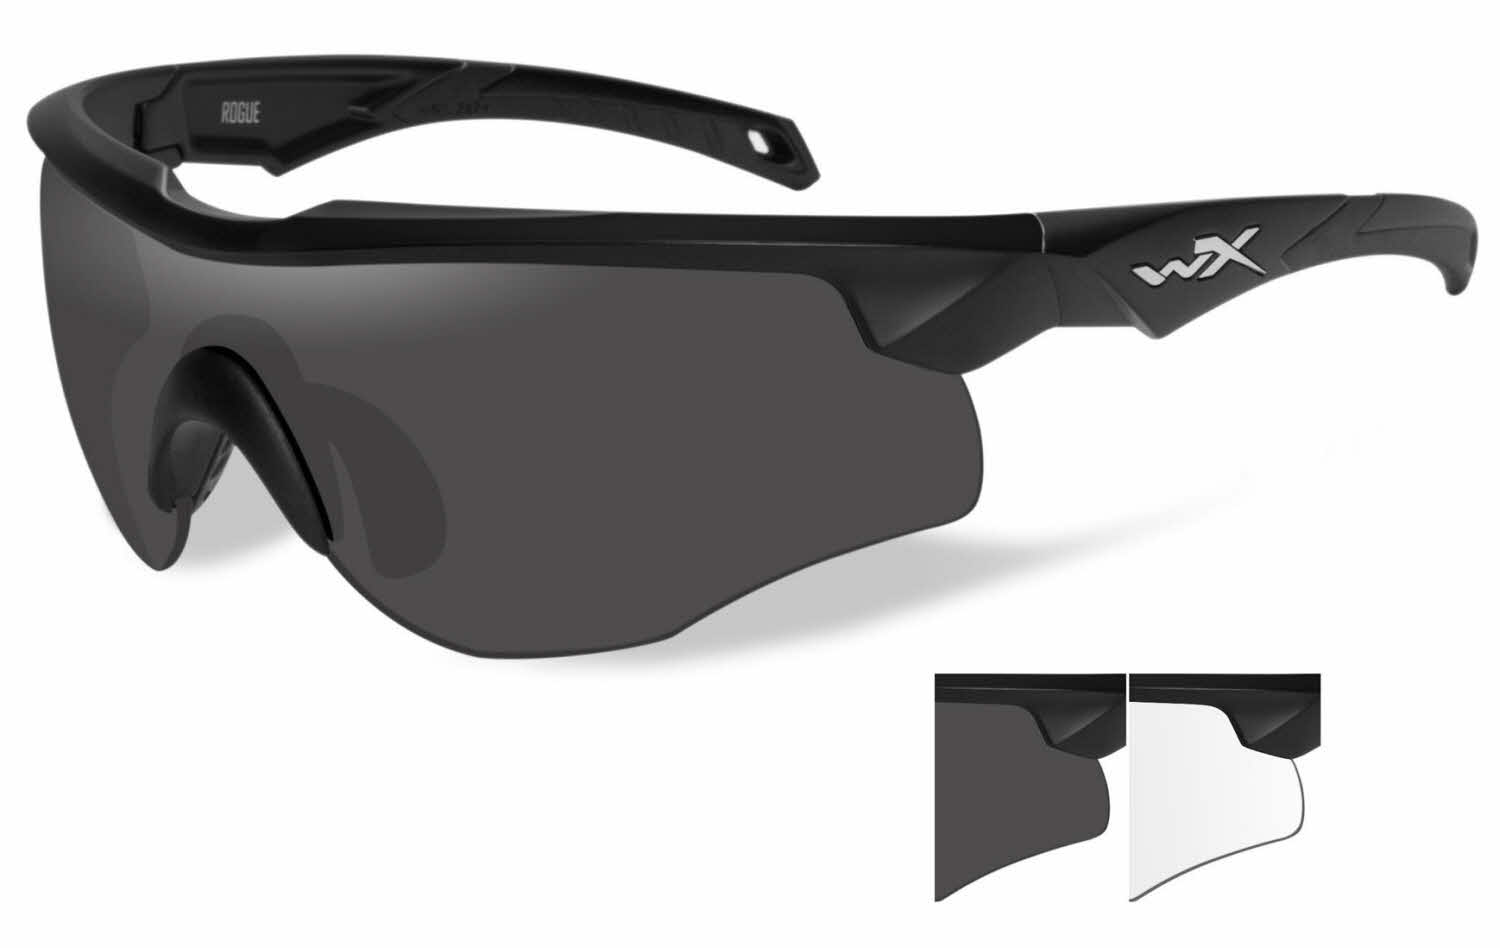 2810b1c9473 Wiley X WX Rogue Prescription Sunglasses